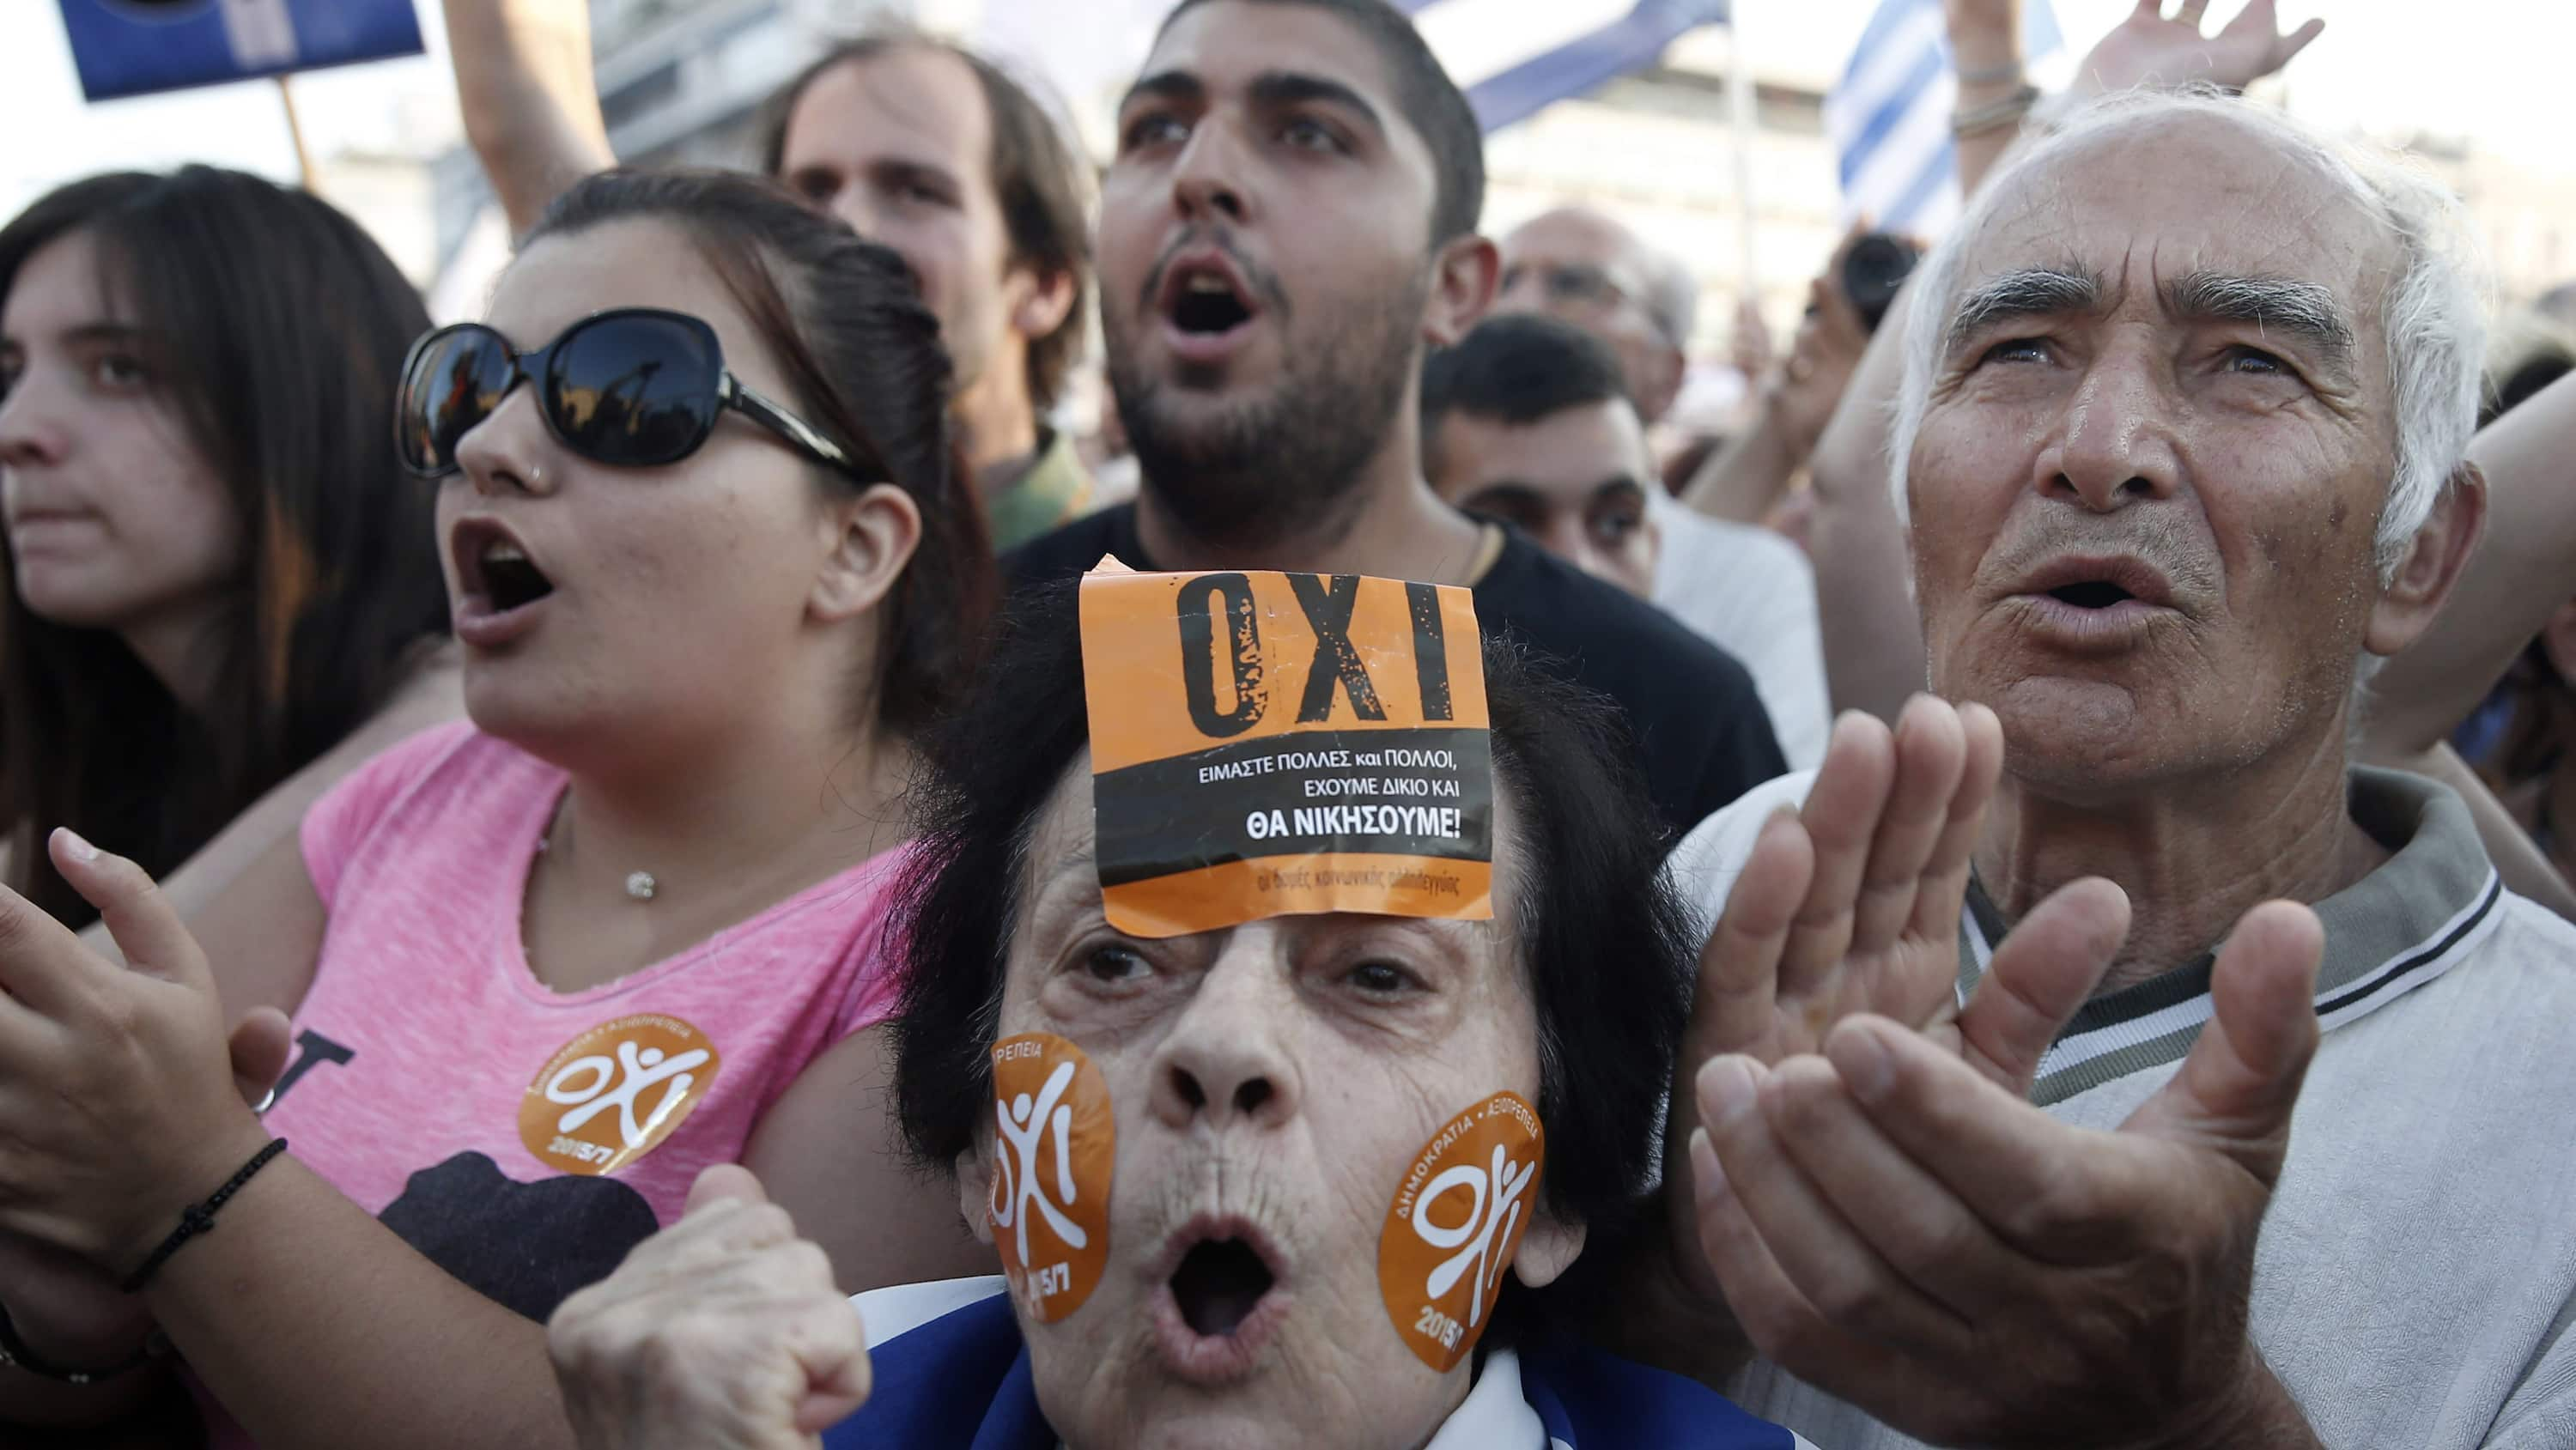 The National - Greeks face crucial vote